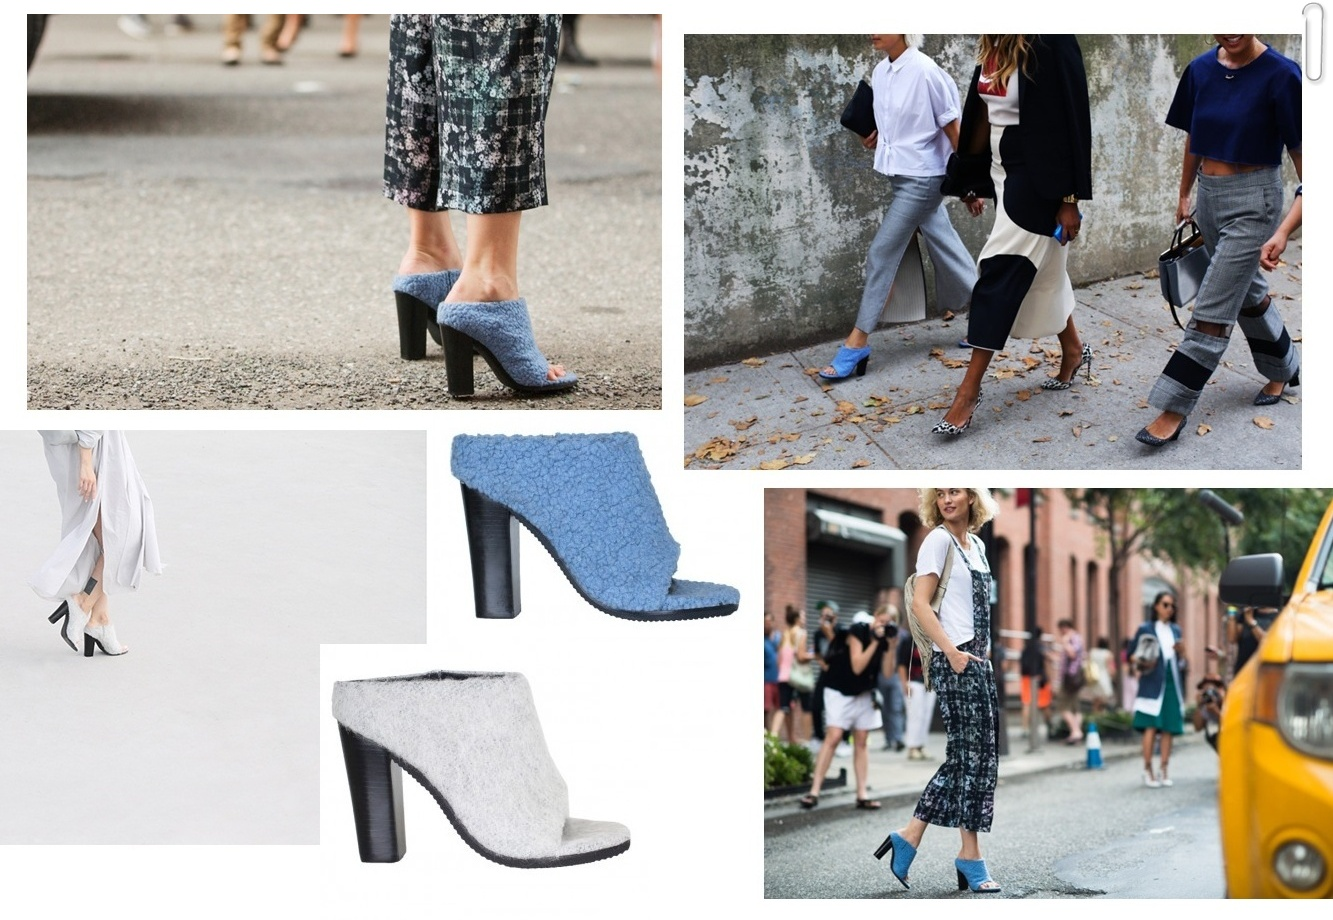 http://www.tibi.com/shop/shoes/view-all/leona-heel-ice-grey